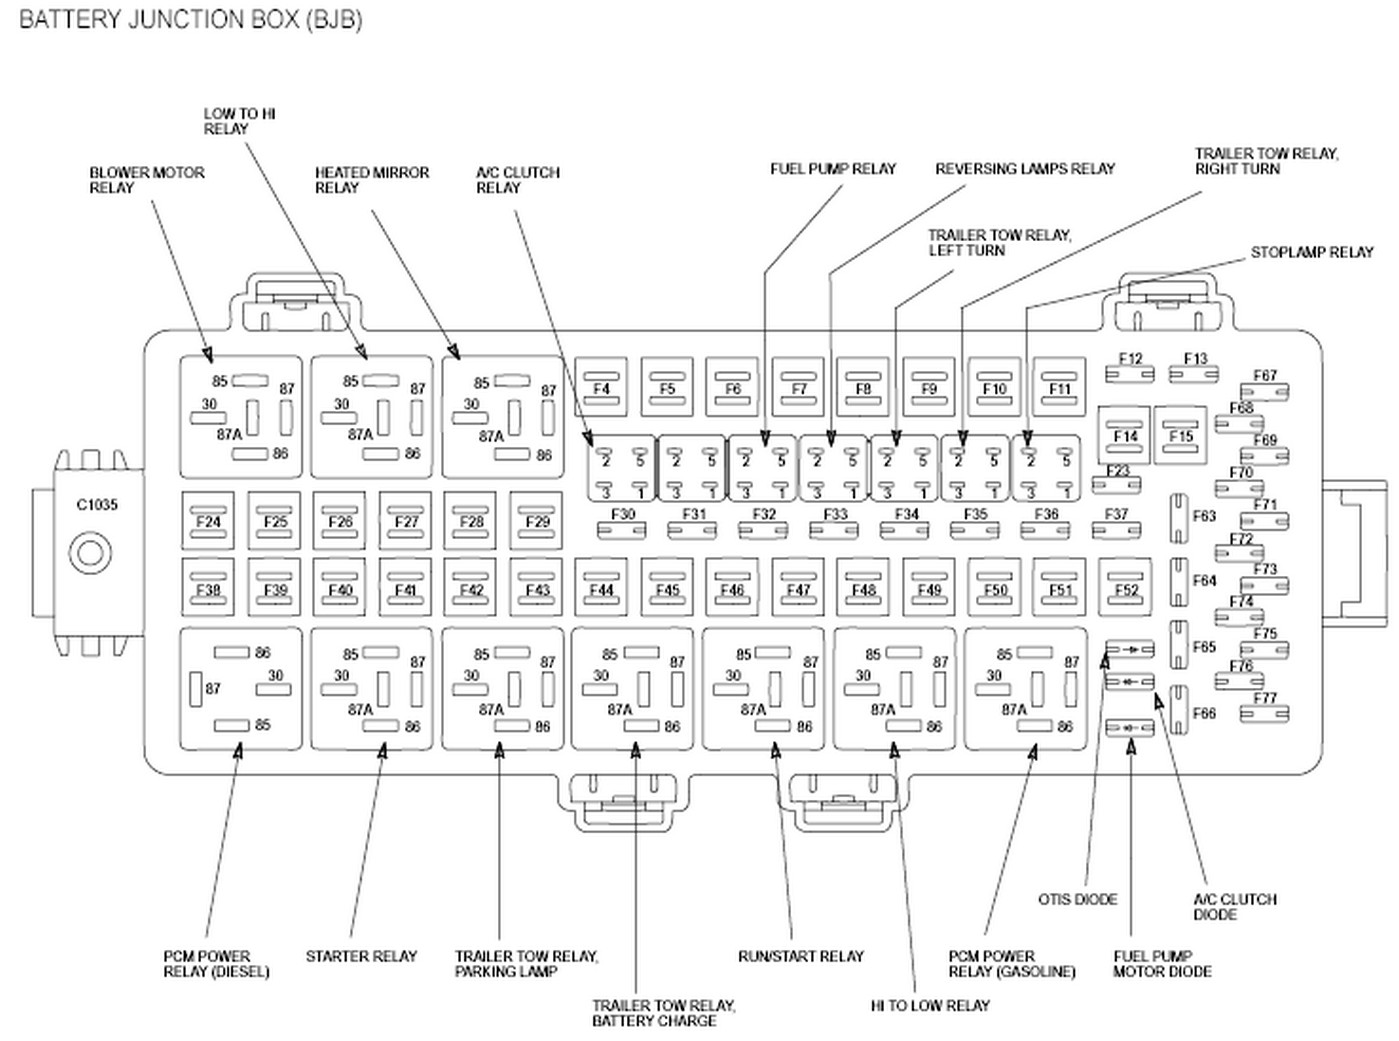 2011 ford f250 fuse box diagram Zoinyhu 2011 ford f250 fuse box diagram image details 2010 f250 fuse box location at gsmx.co